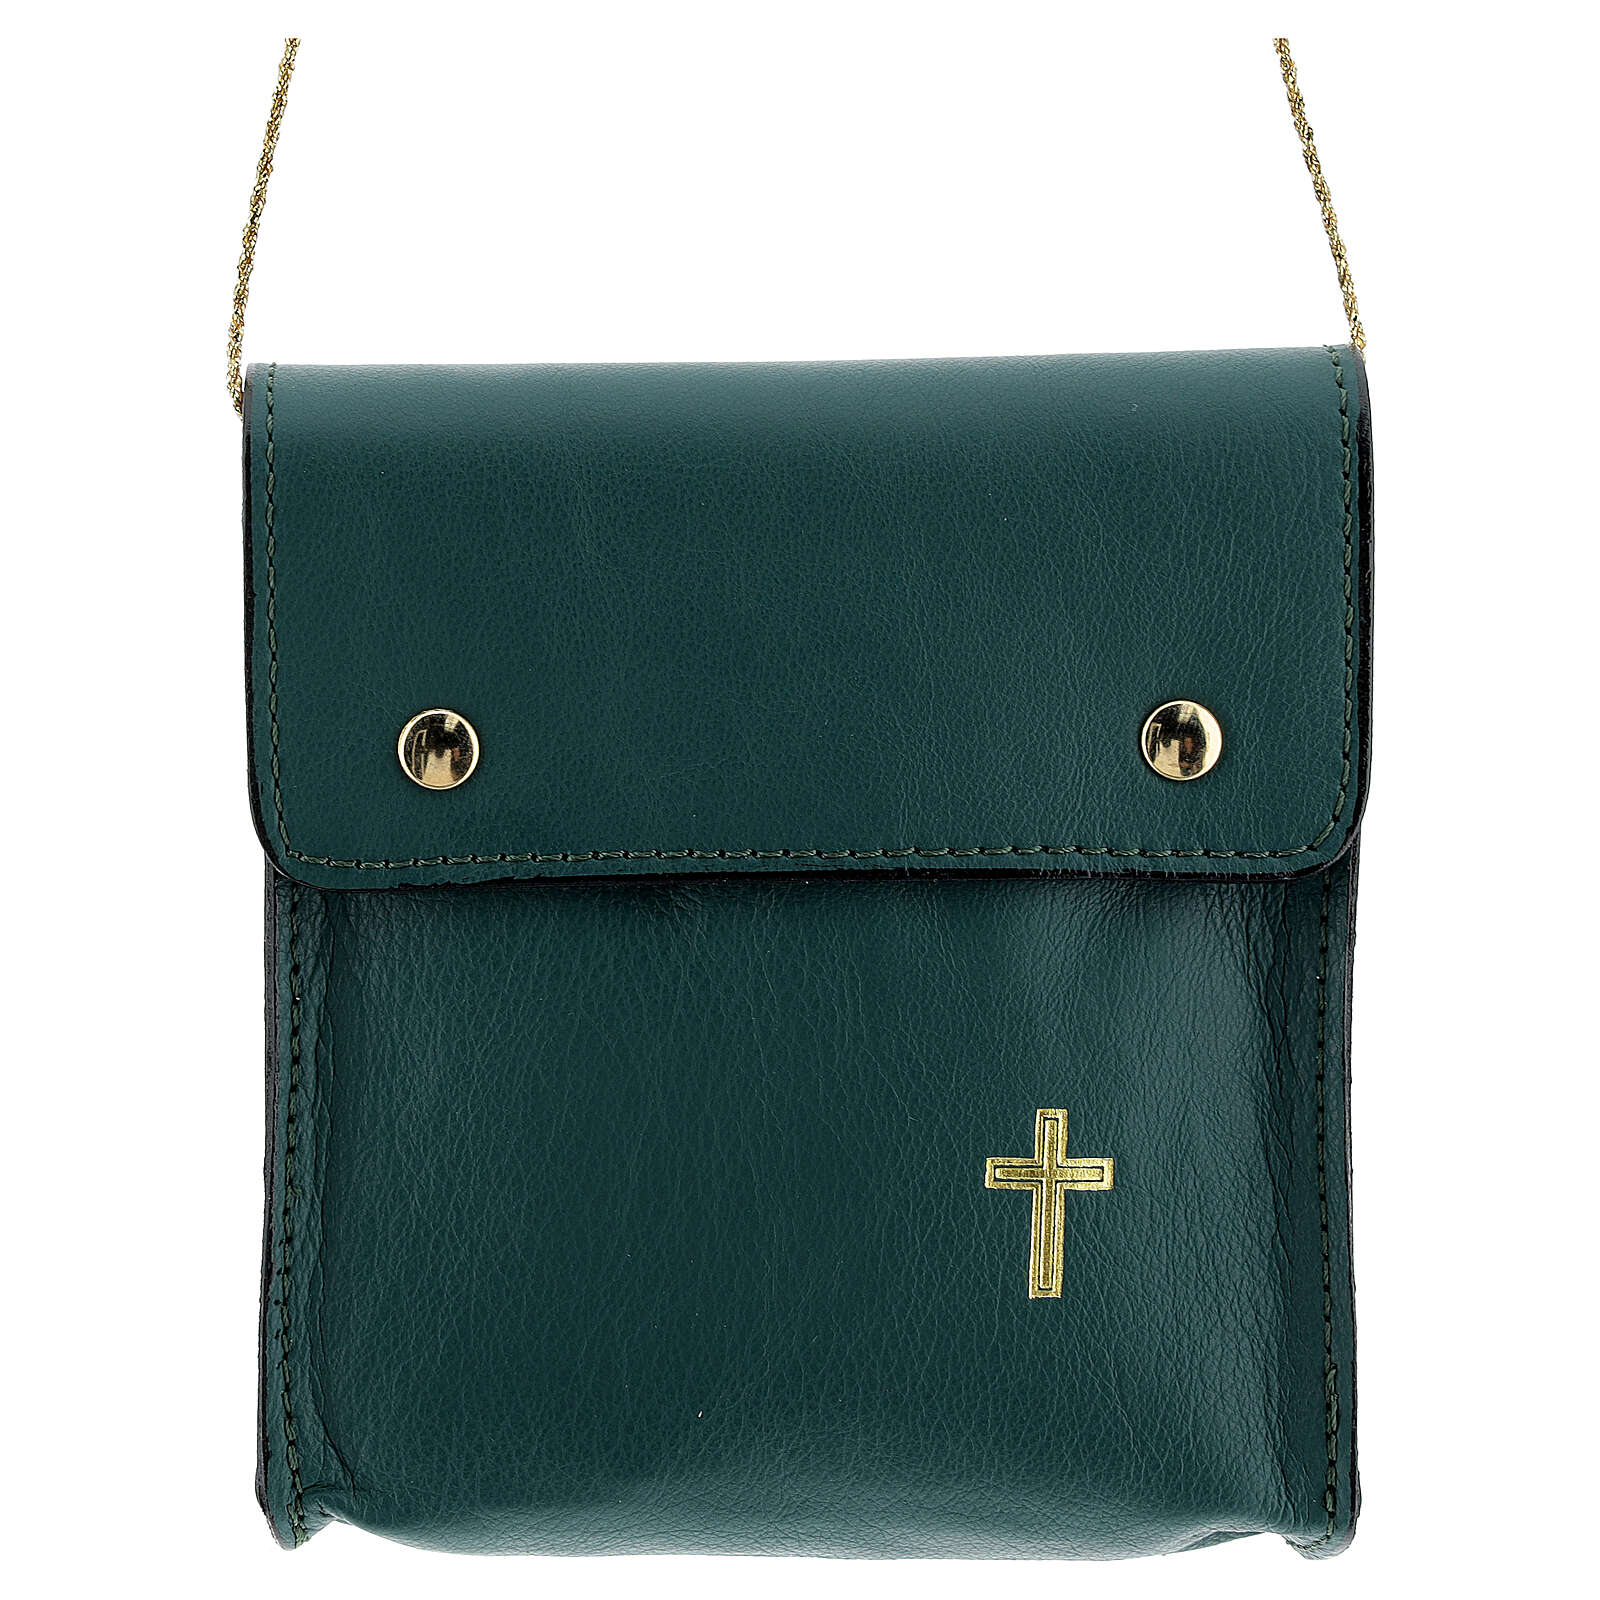 Rectangular paten burse 5x4 1/2 in real green leather 4